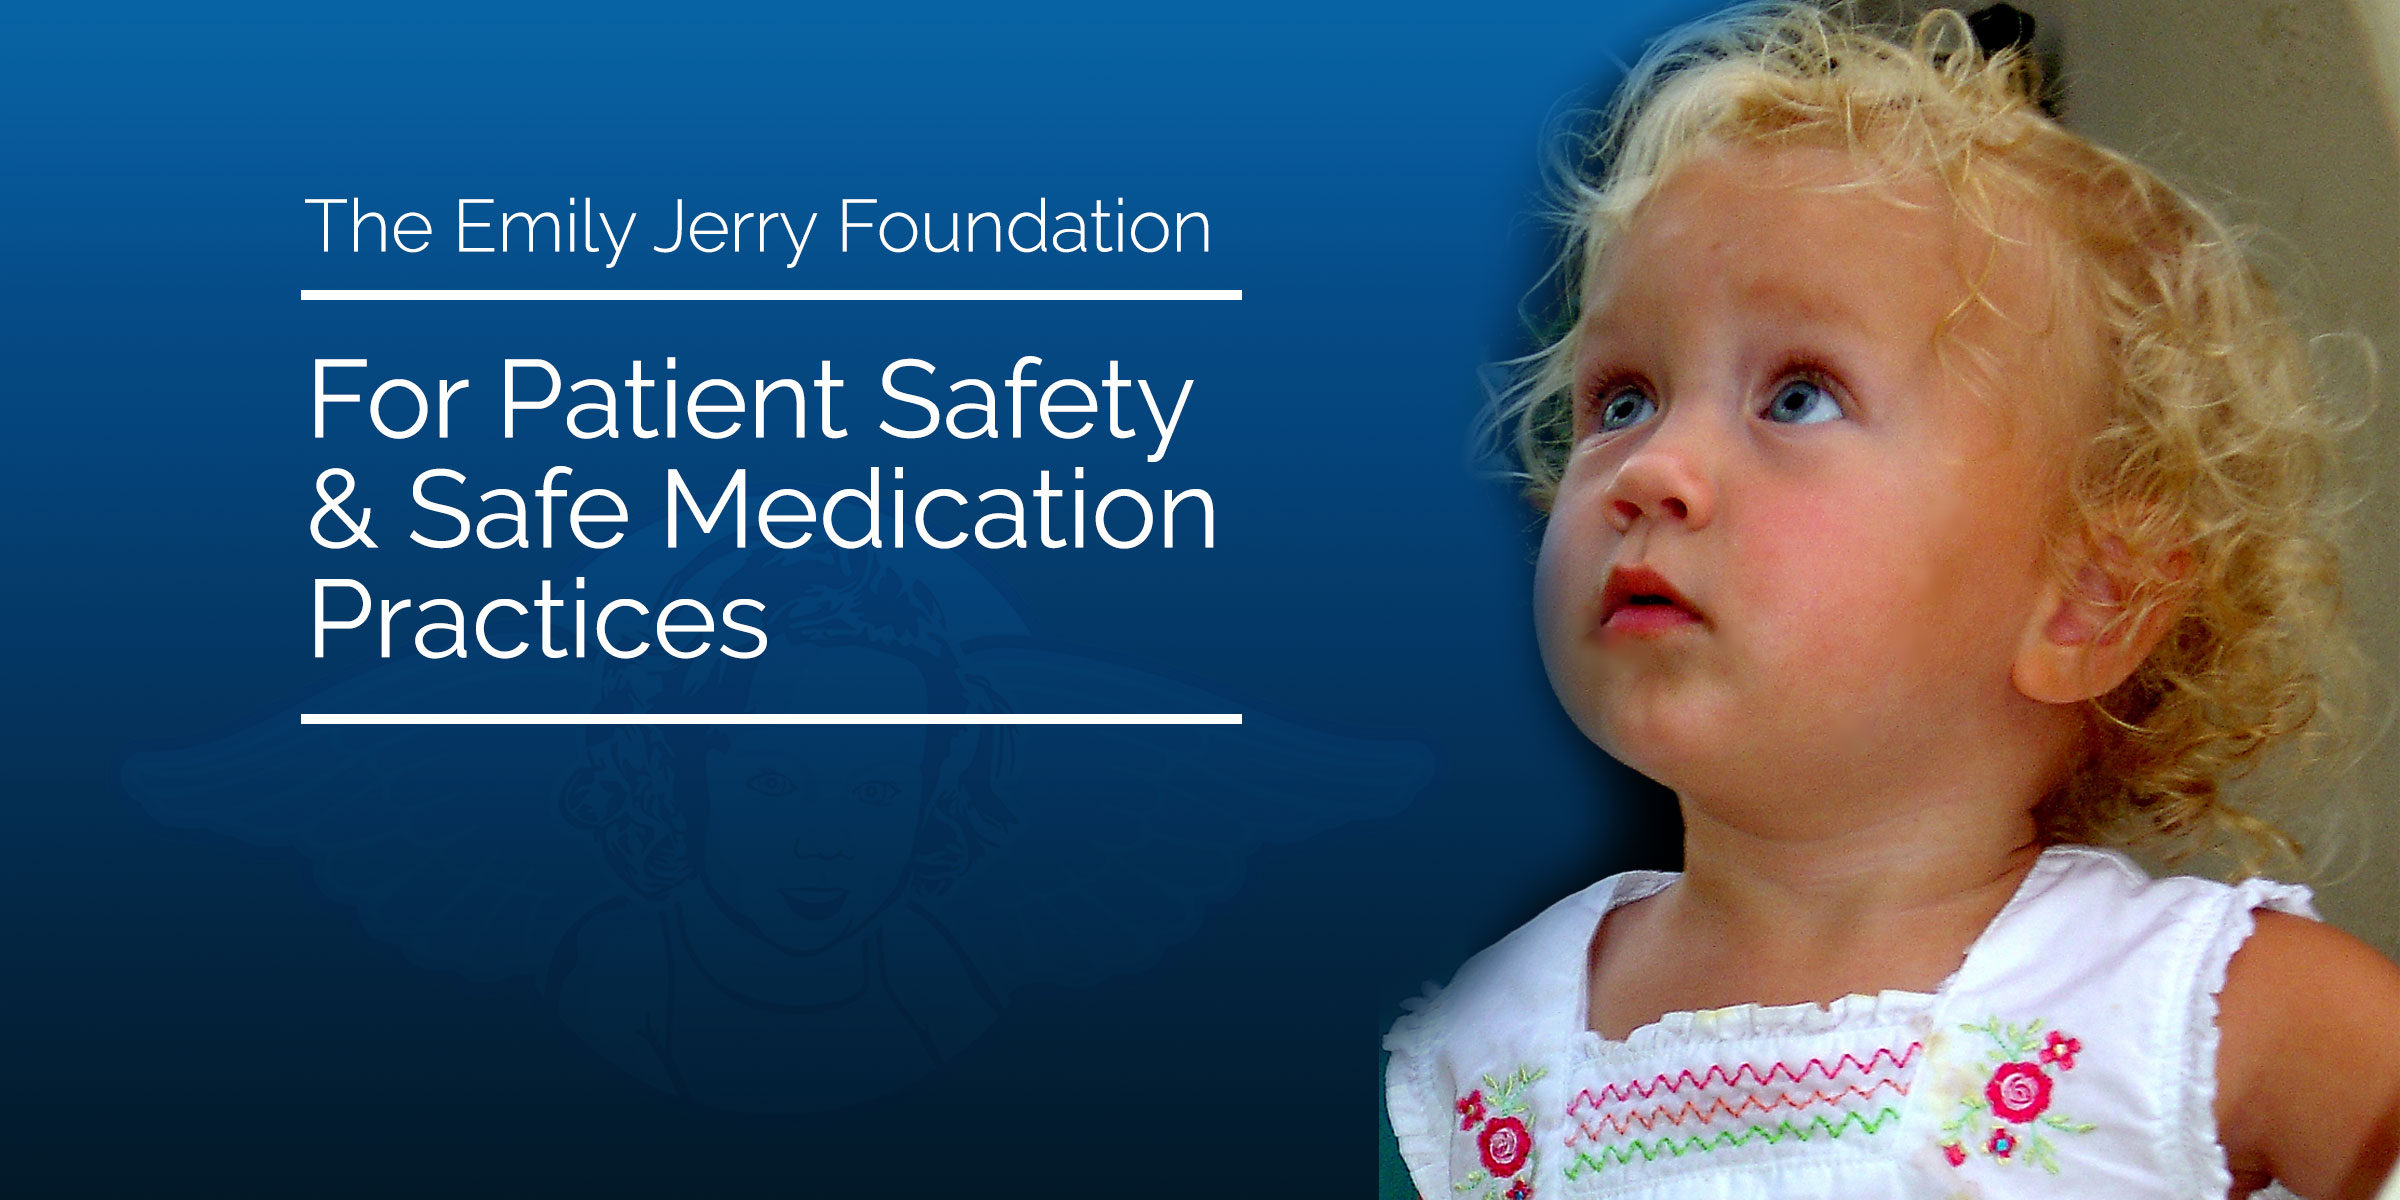 Emily Jerry Foundation